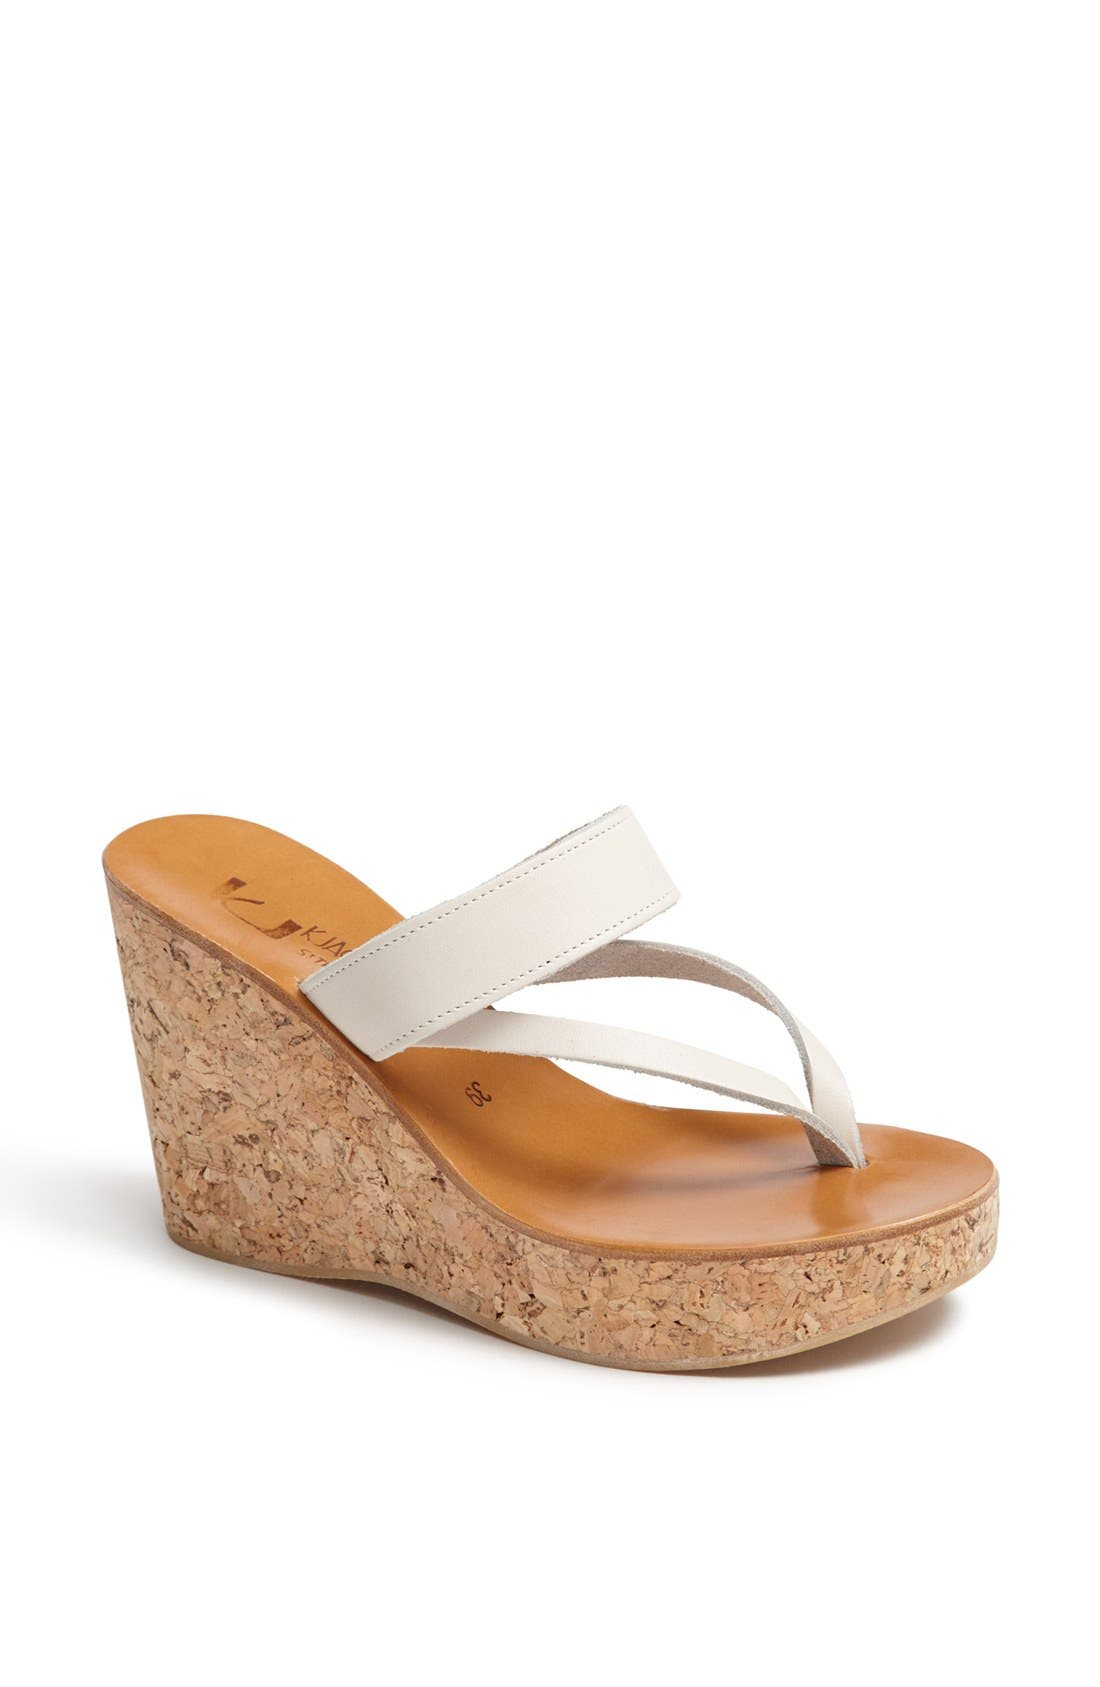 Alternate Image 1 Selected - K.Jacques St. Tropez 'Saturnine' Cork Wedge Sandal